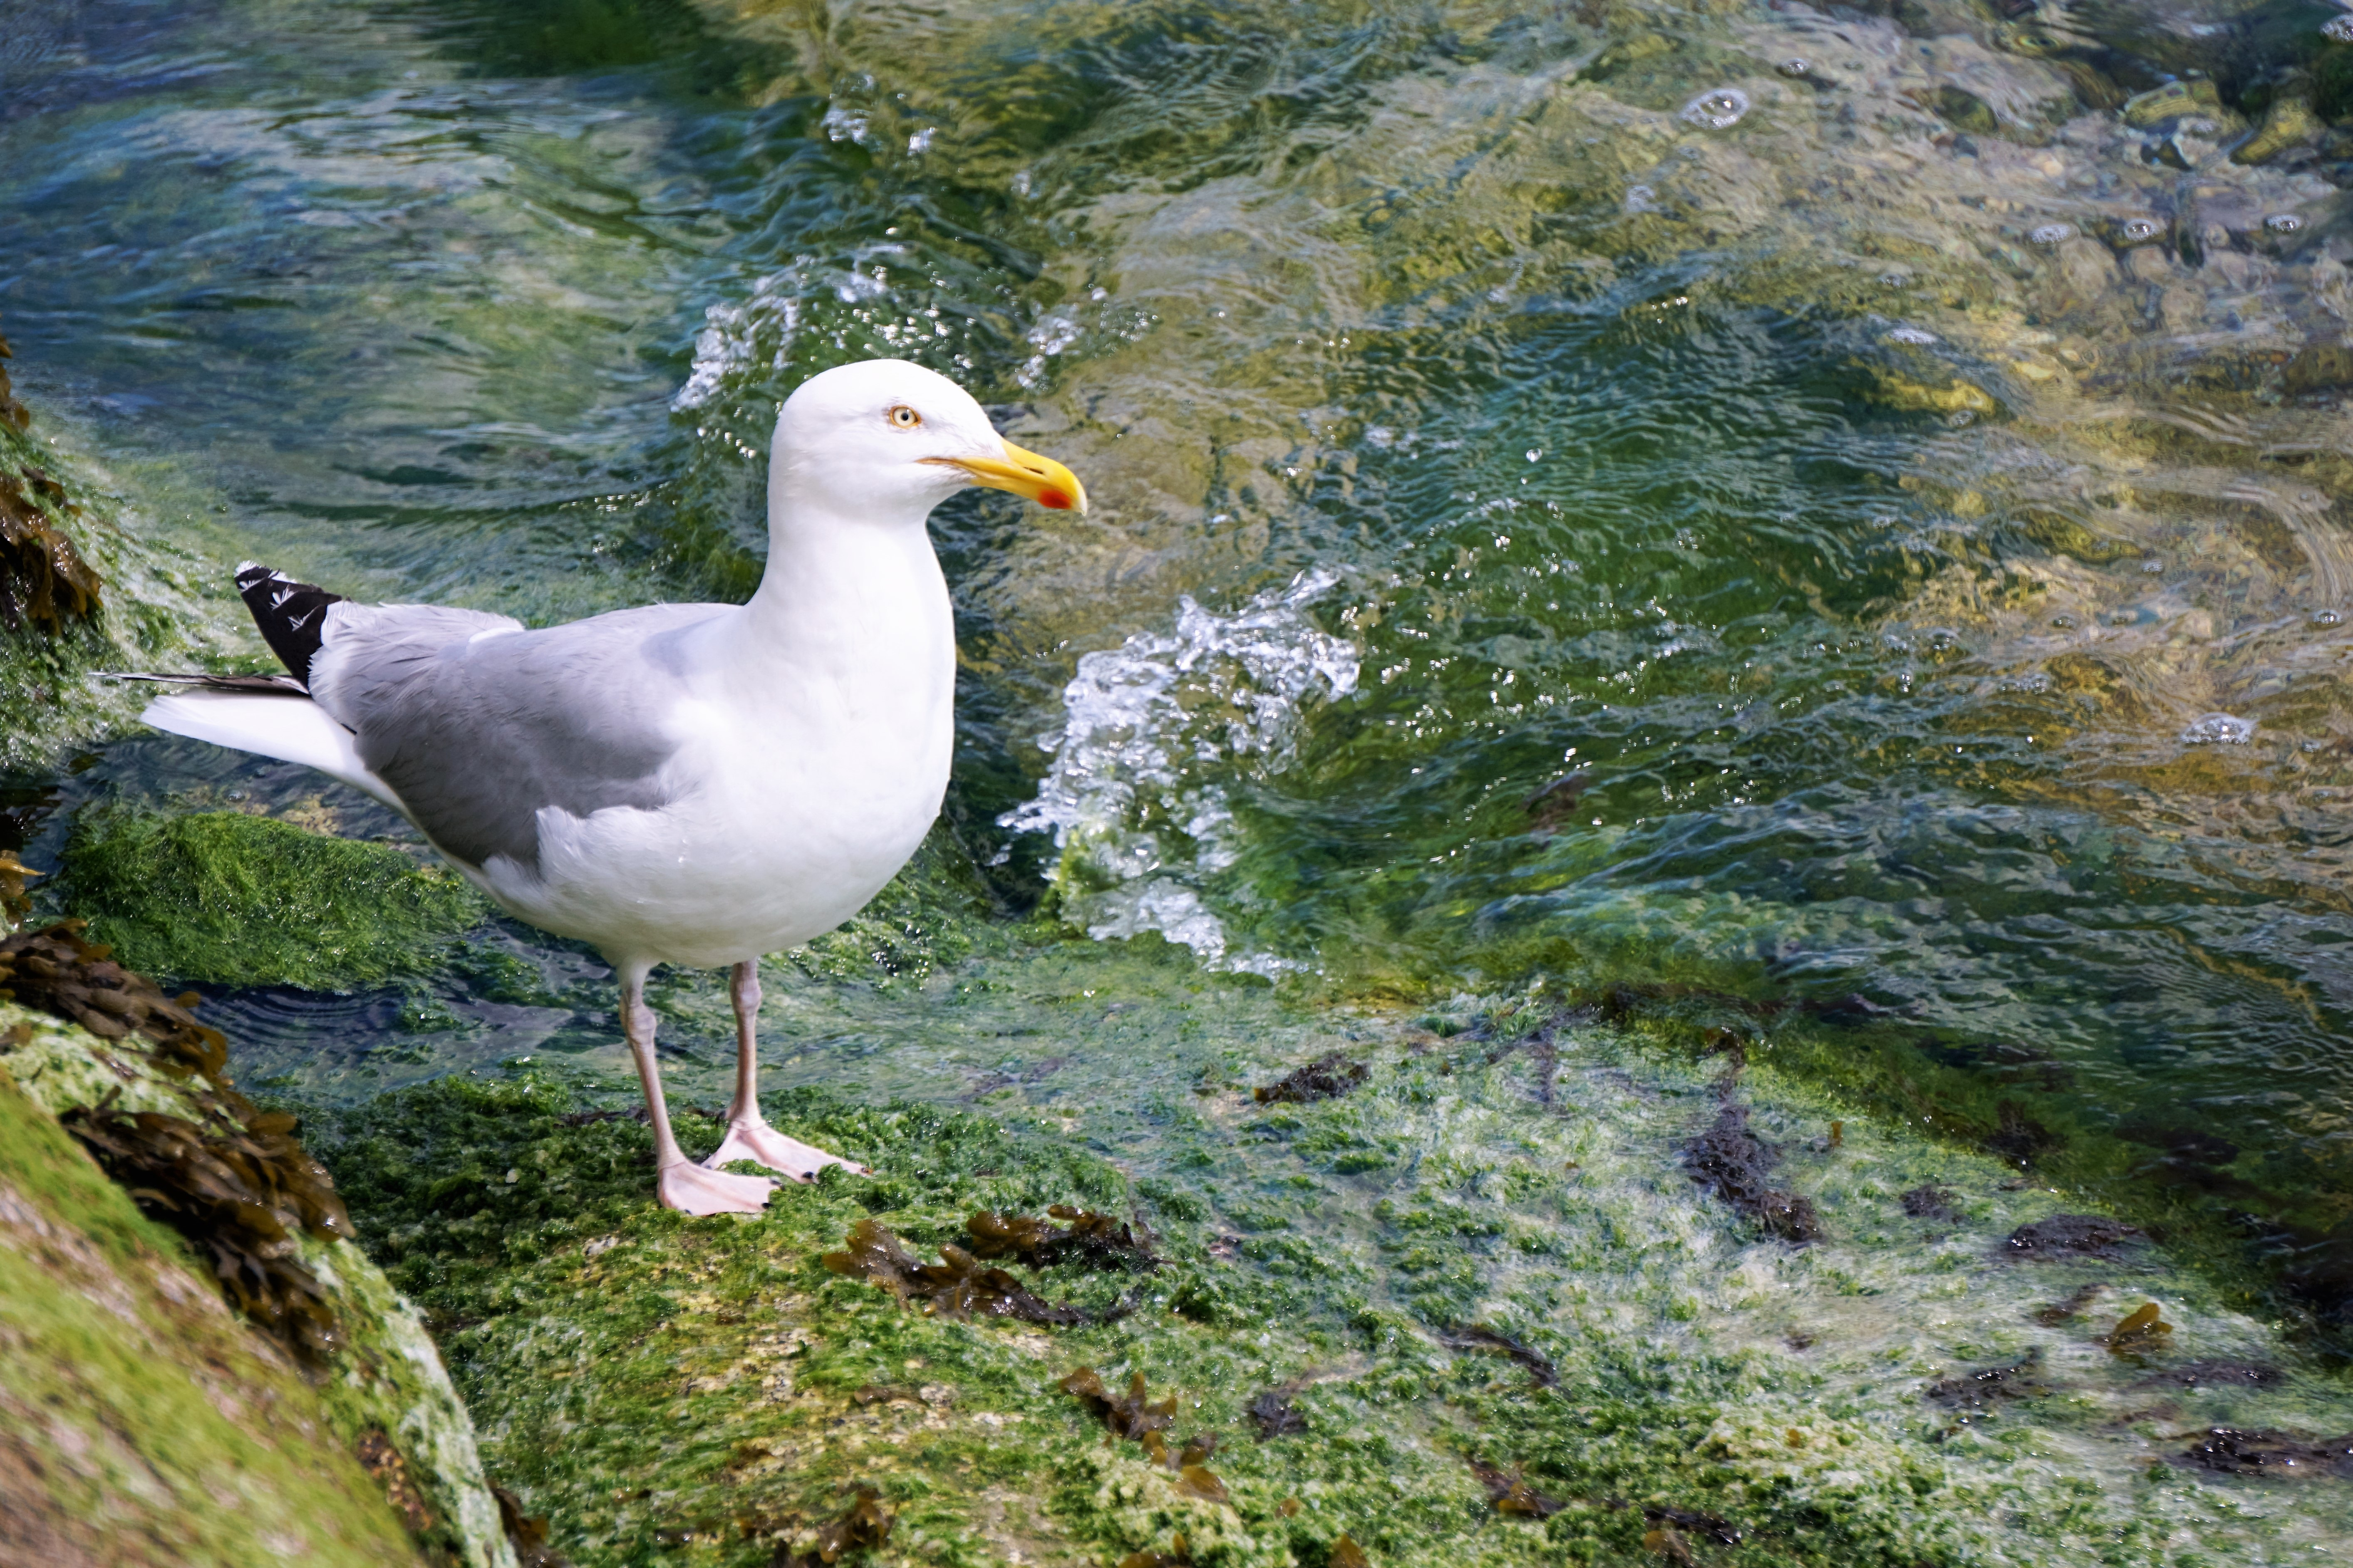 105180 download wallpaper Animals, Gull, Seagull, Bird, Sea Bird, Seabird, Water screensavers and pictures for free